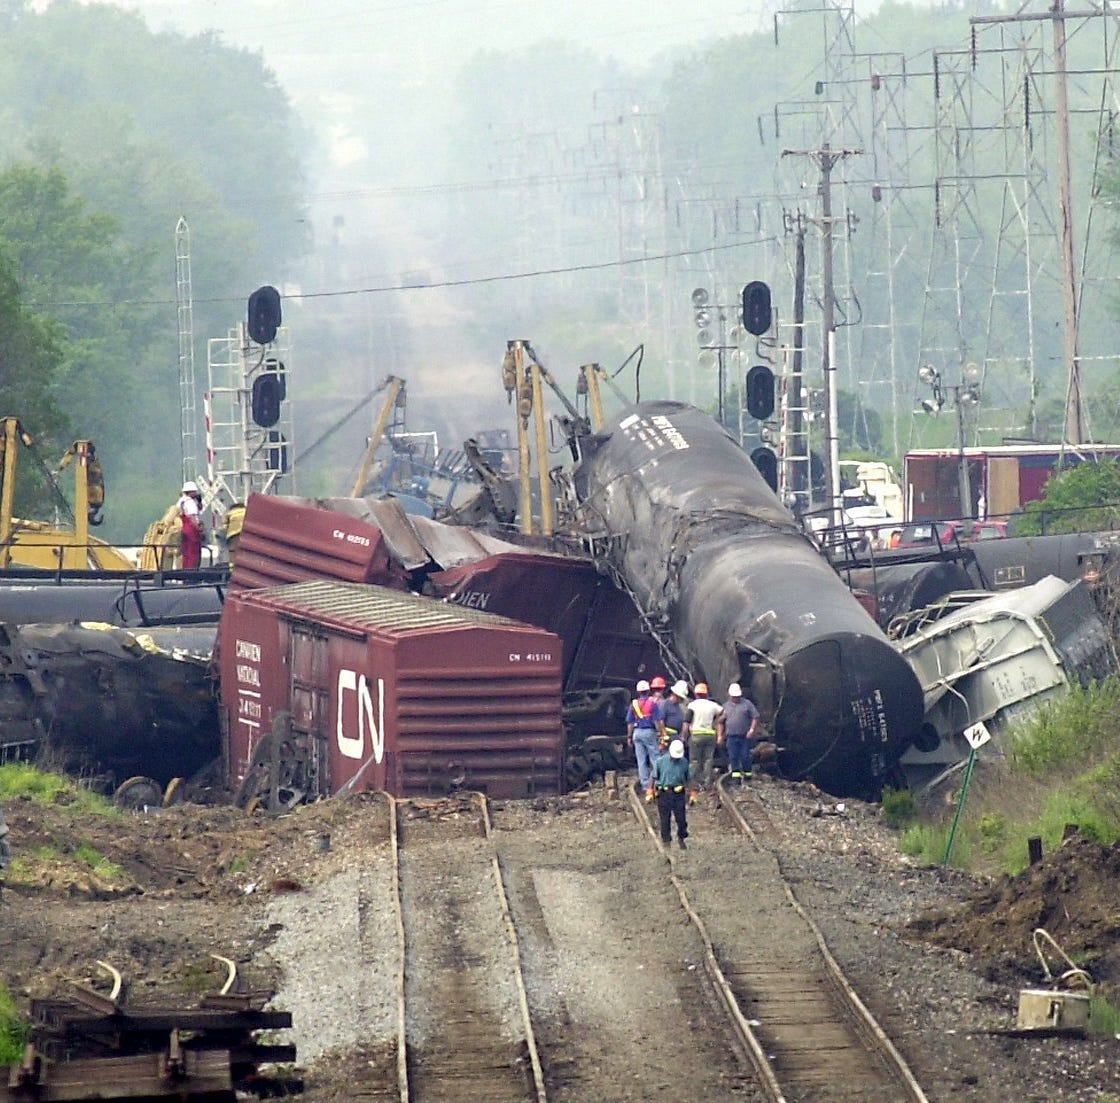 Casting call is Saturday for new film that will use Potterville train derailment as a backdrop